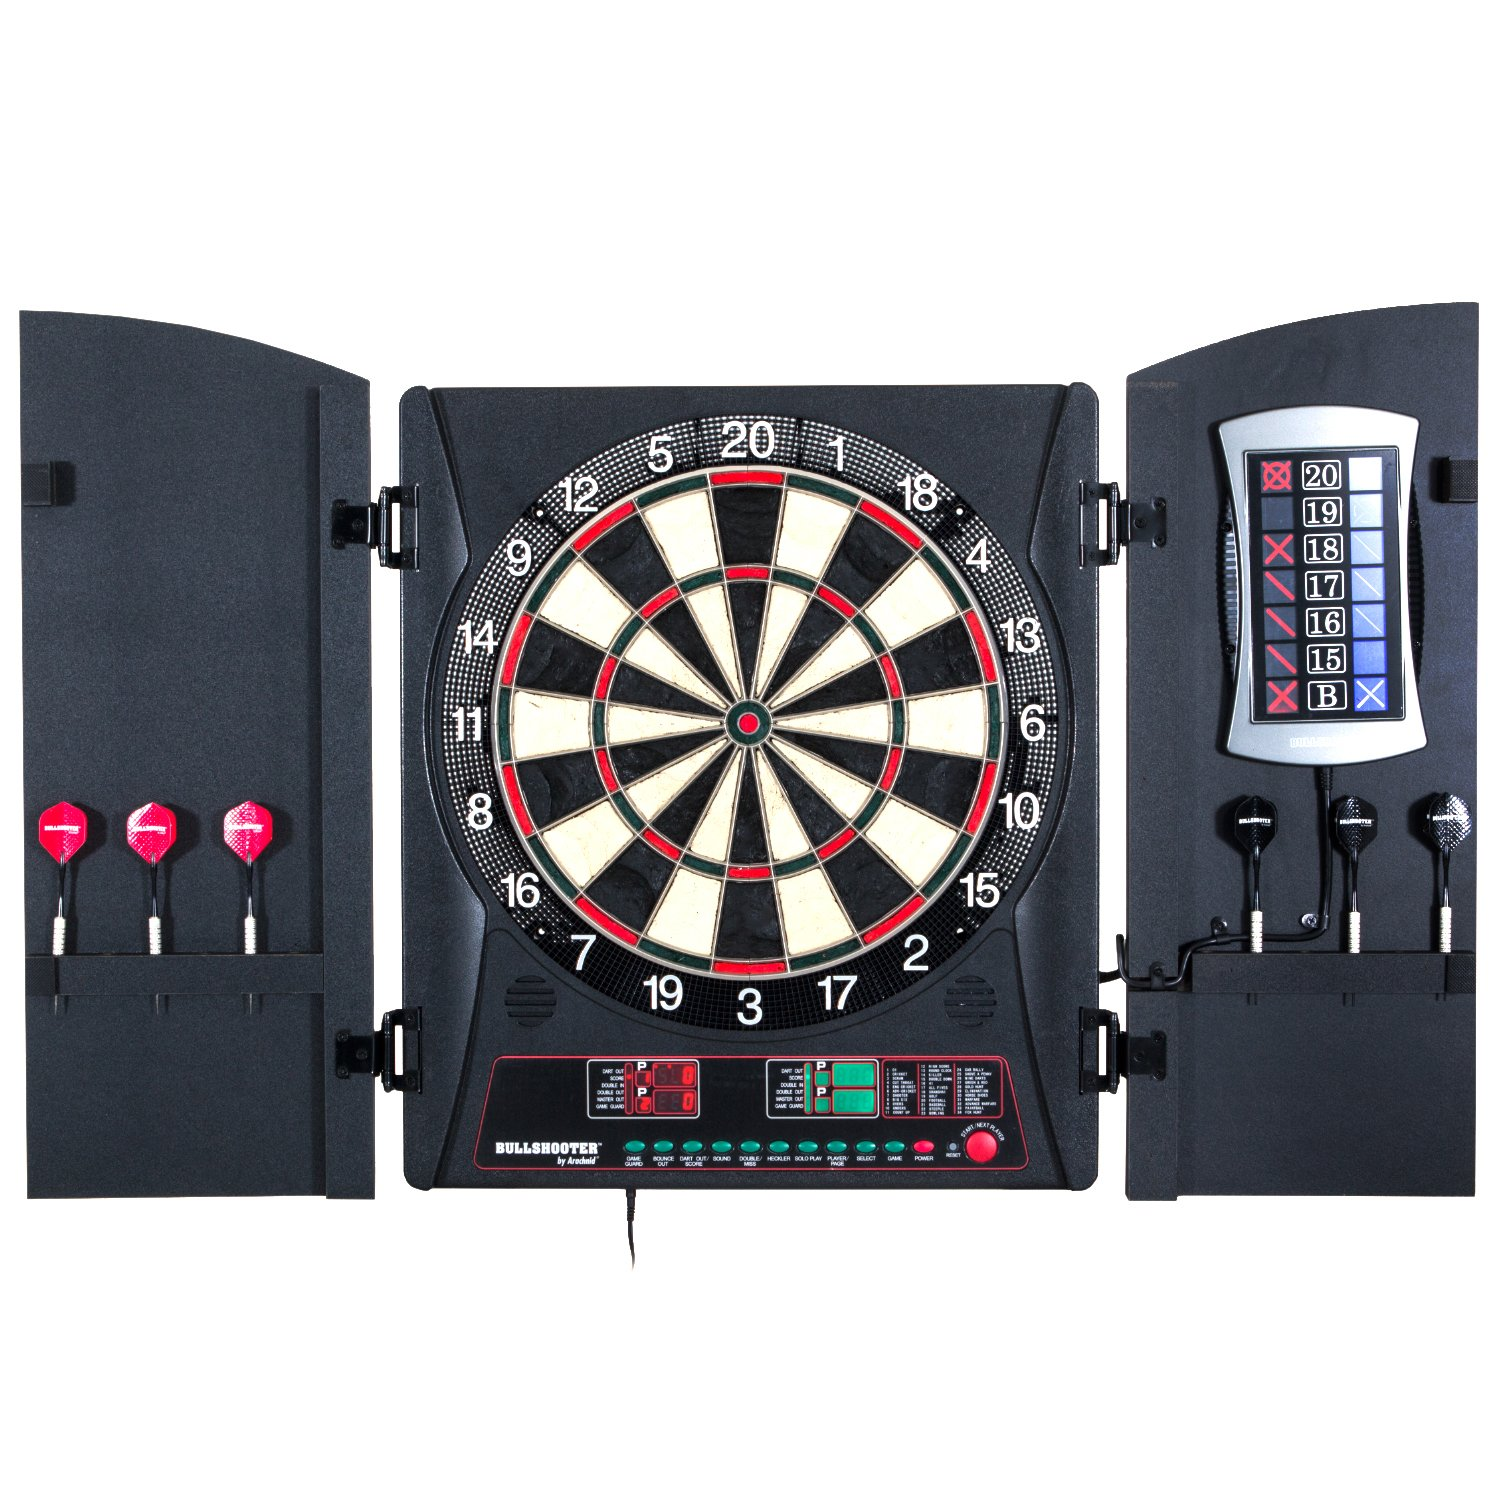 Bullshooter by Arachnid E-Bristle Cricketmaxx 3.0 Dartboard Cabinet Set